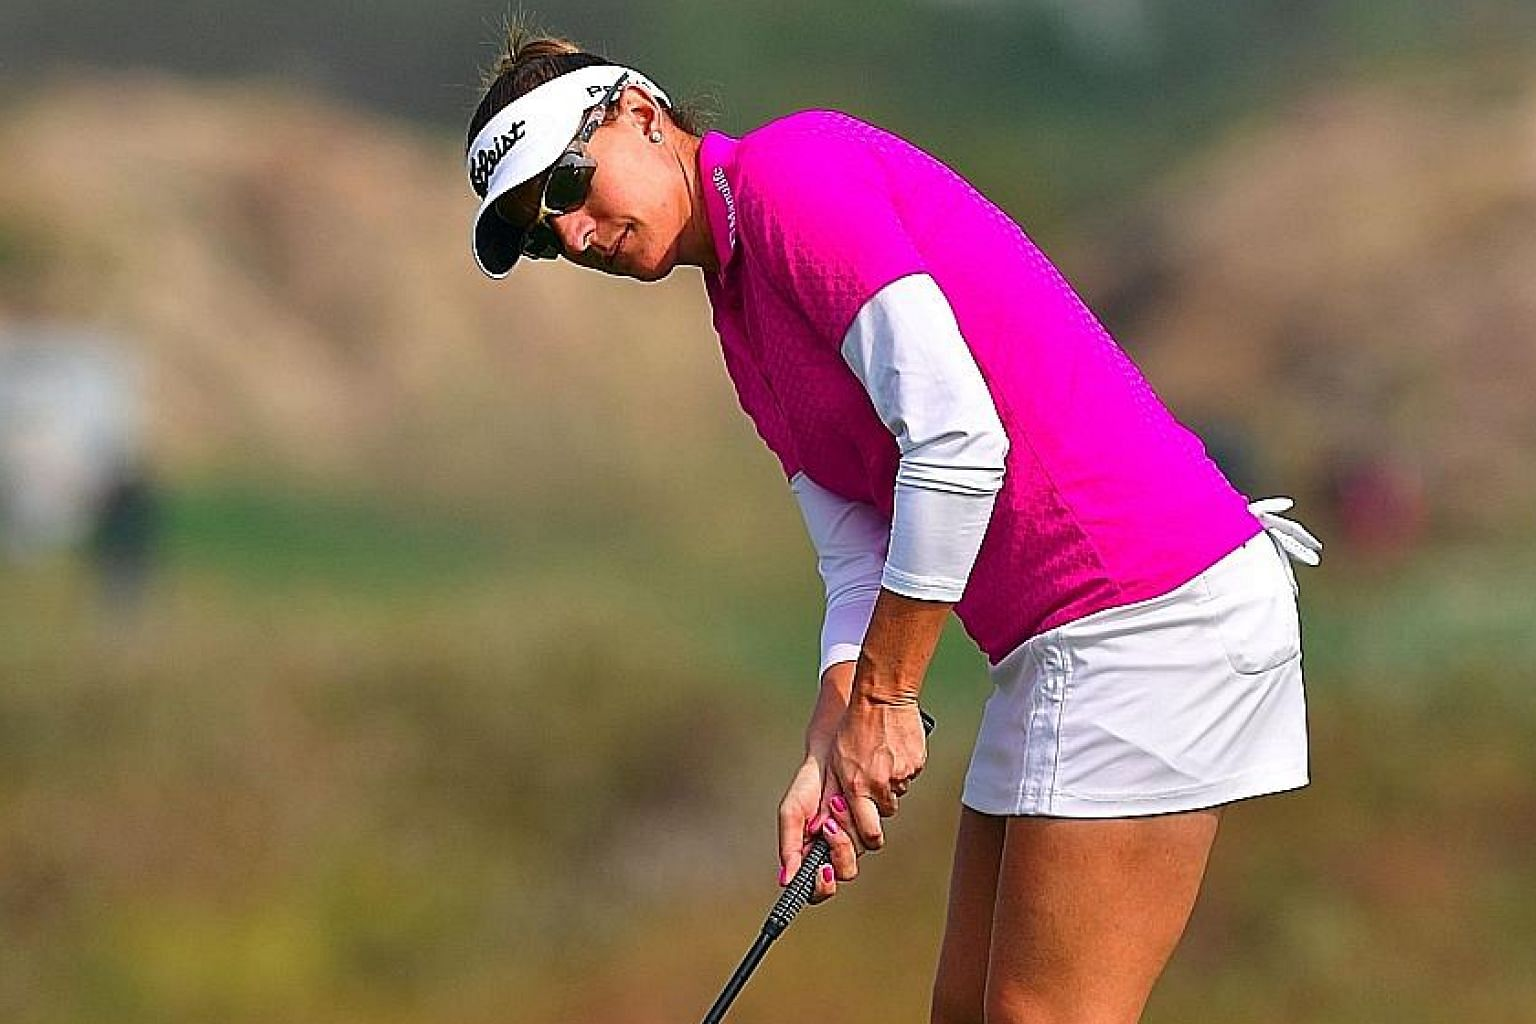 Brittany Lang putting on the sixth hole, where she made par, in the second round of the KEB Hana Bank Championship in Incheon. It has been a lean year for Americans, with only Lang and Lexi Thompson winning.